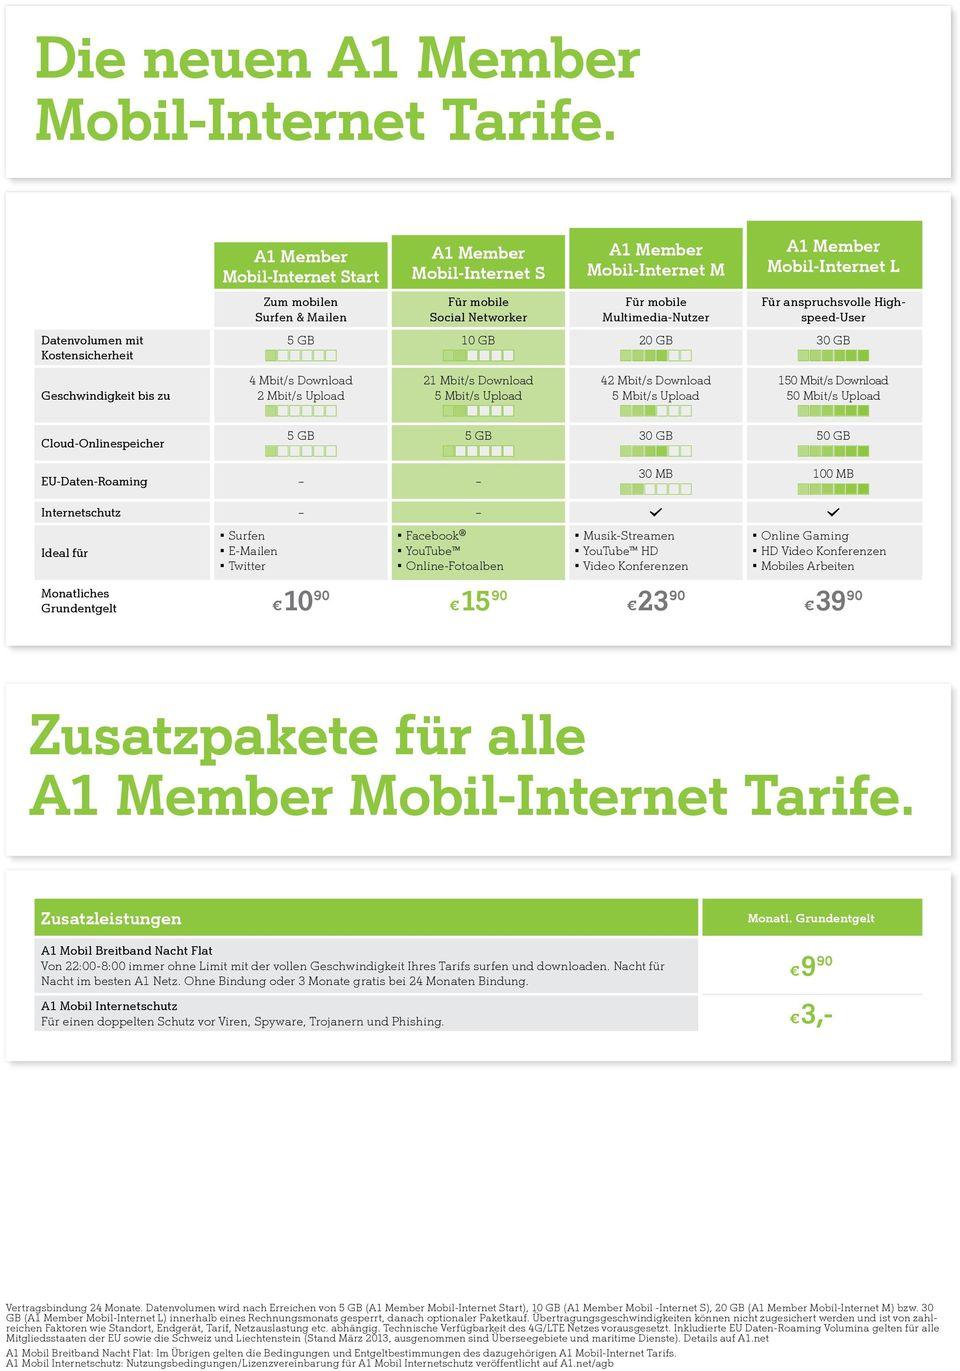 Datenvolumen mit Kostensicherheit 5 GB 10 GB 20 GB 30 GB Geschwindigkeit bis zu 4 Mbit/s Download 2 Mbit/s Upload 21 Mbit/s Download 42 Mbit/s Download 150 Mbit/s Download 50 Mbit/s Upload